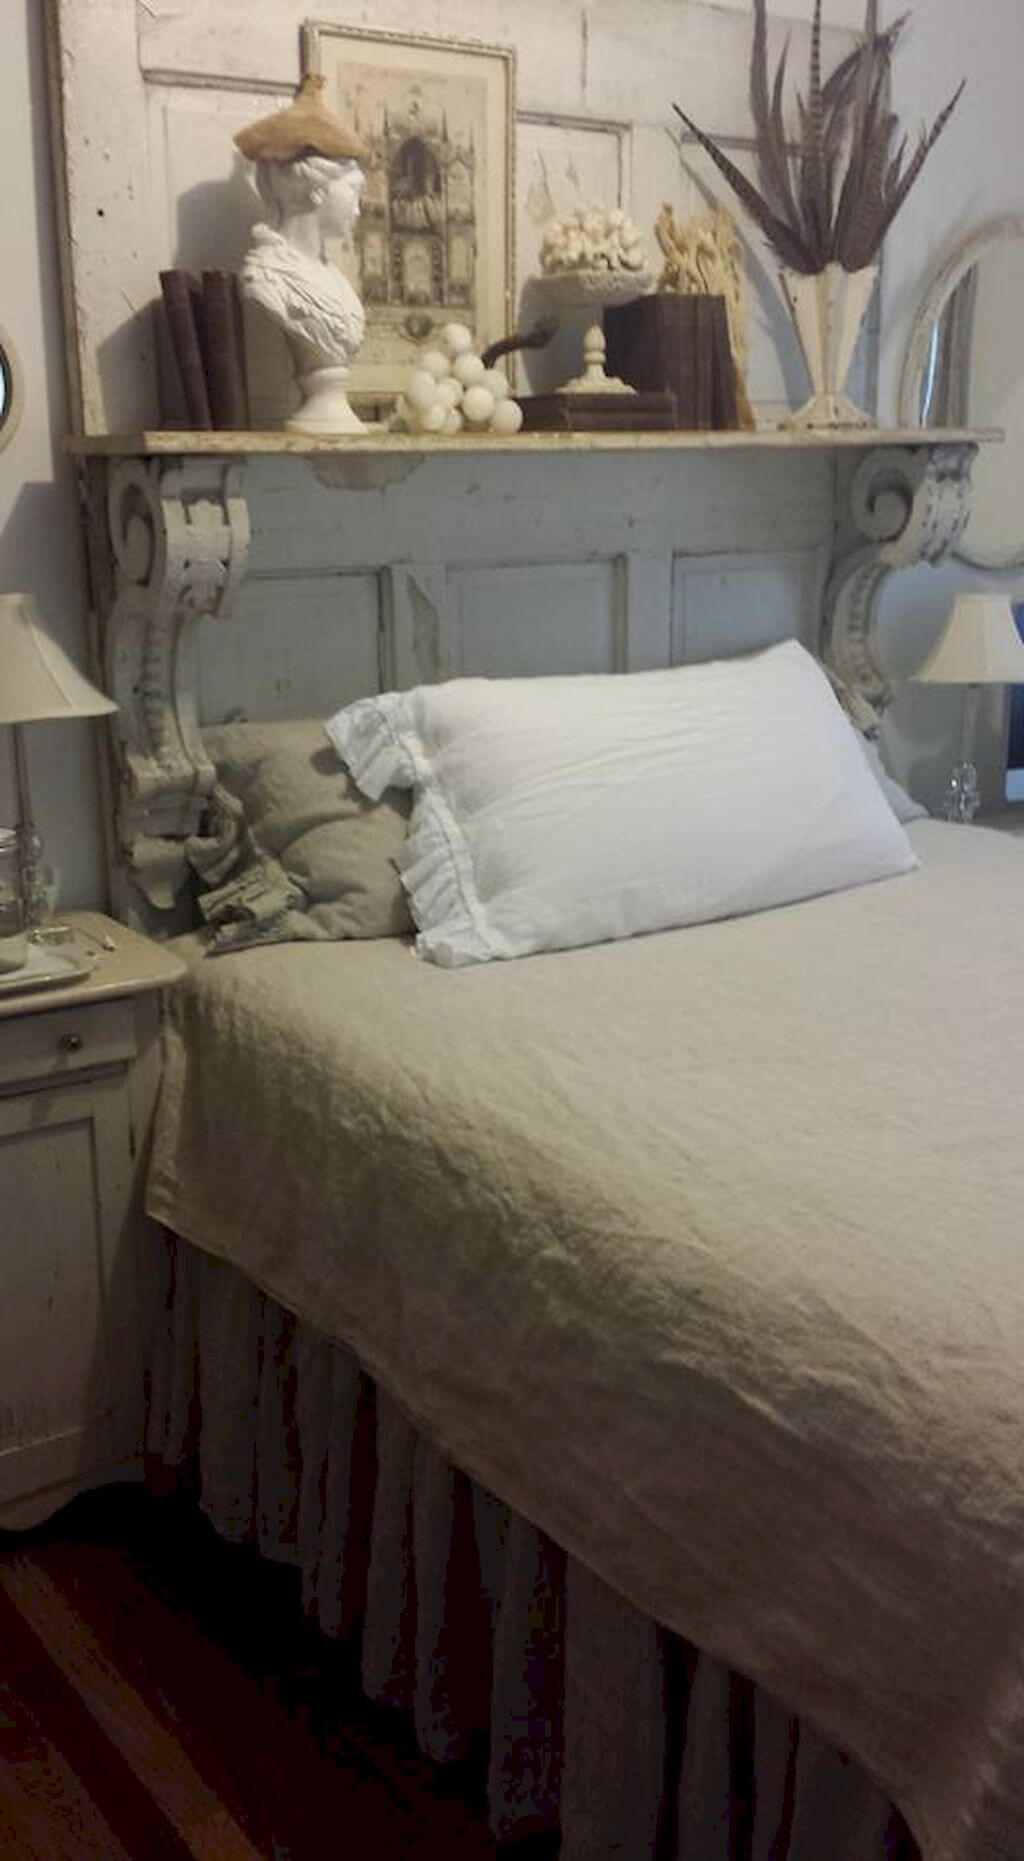 Architectural Salvage Headboard Idea with Shelving